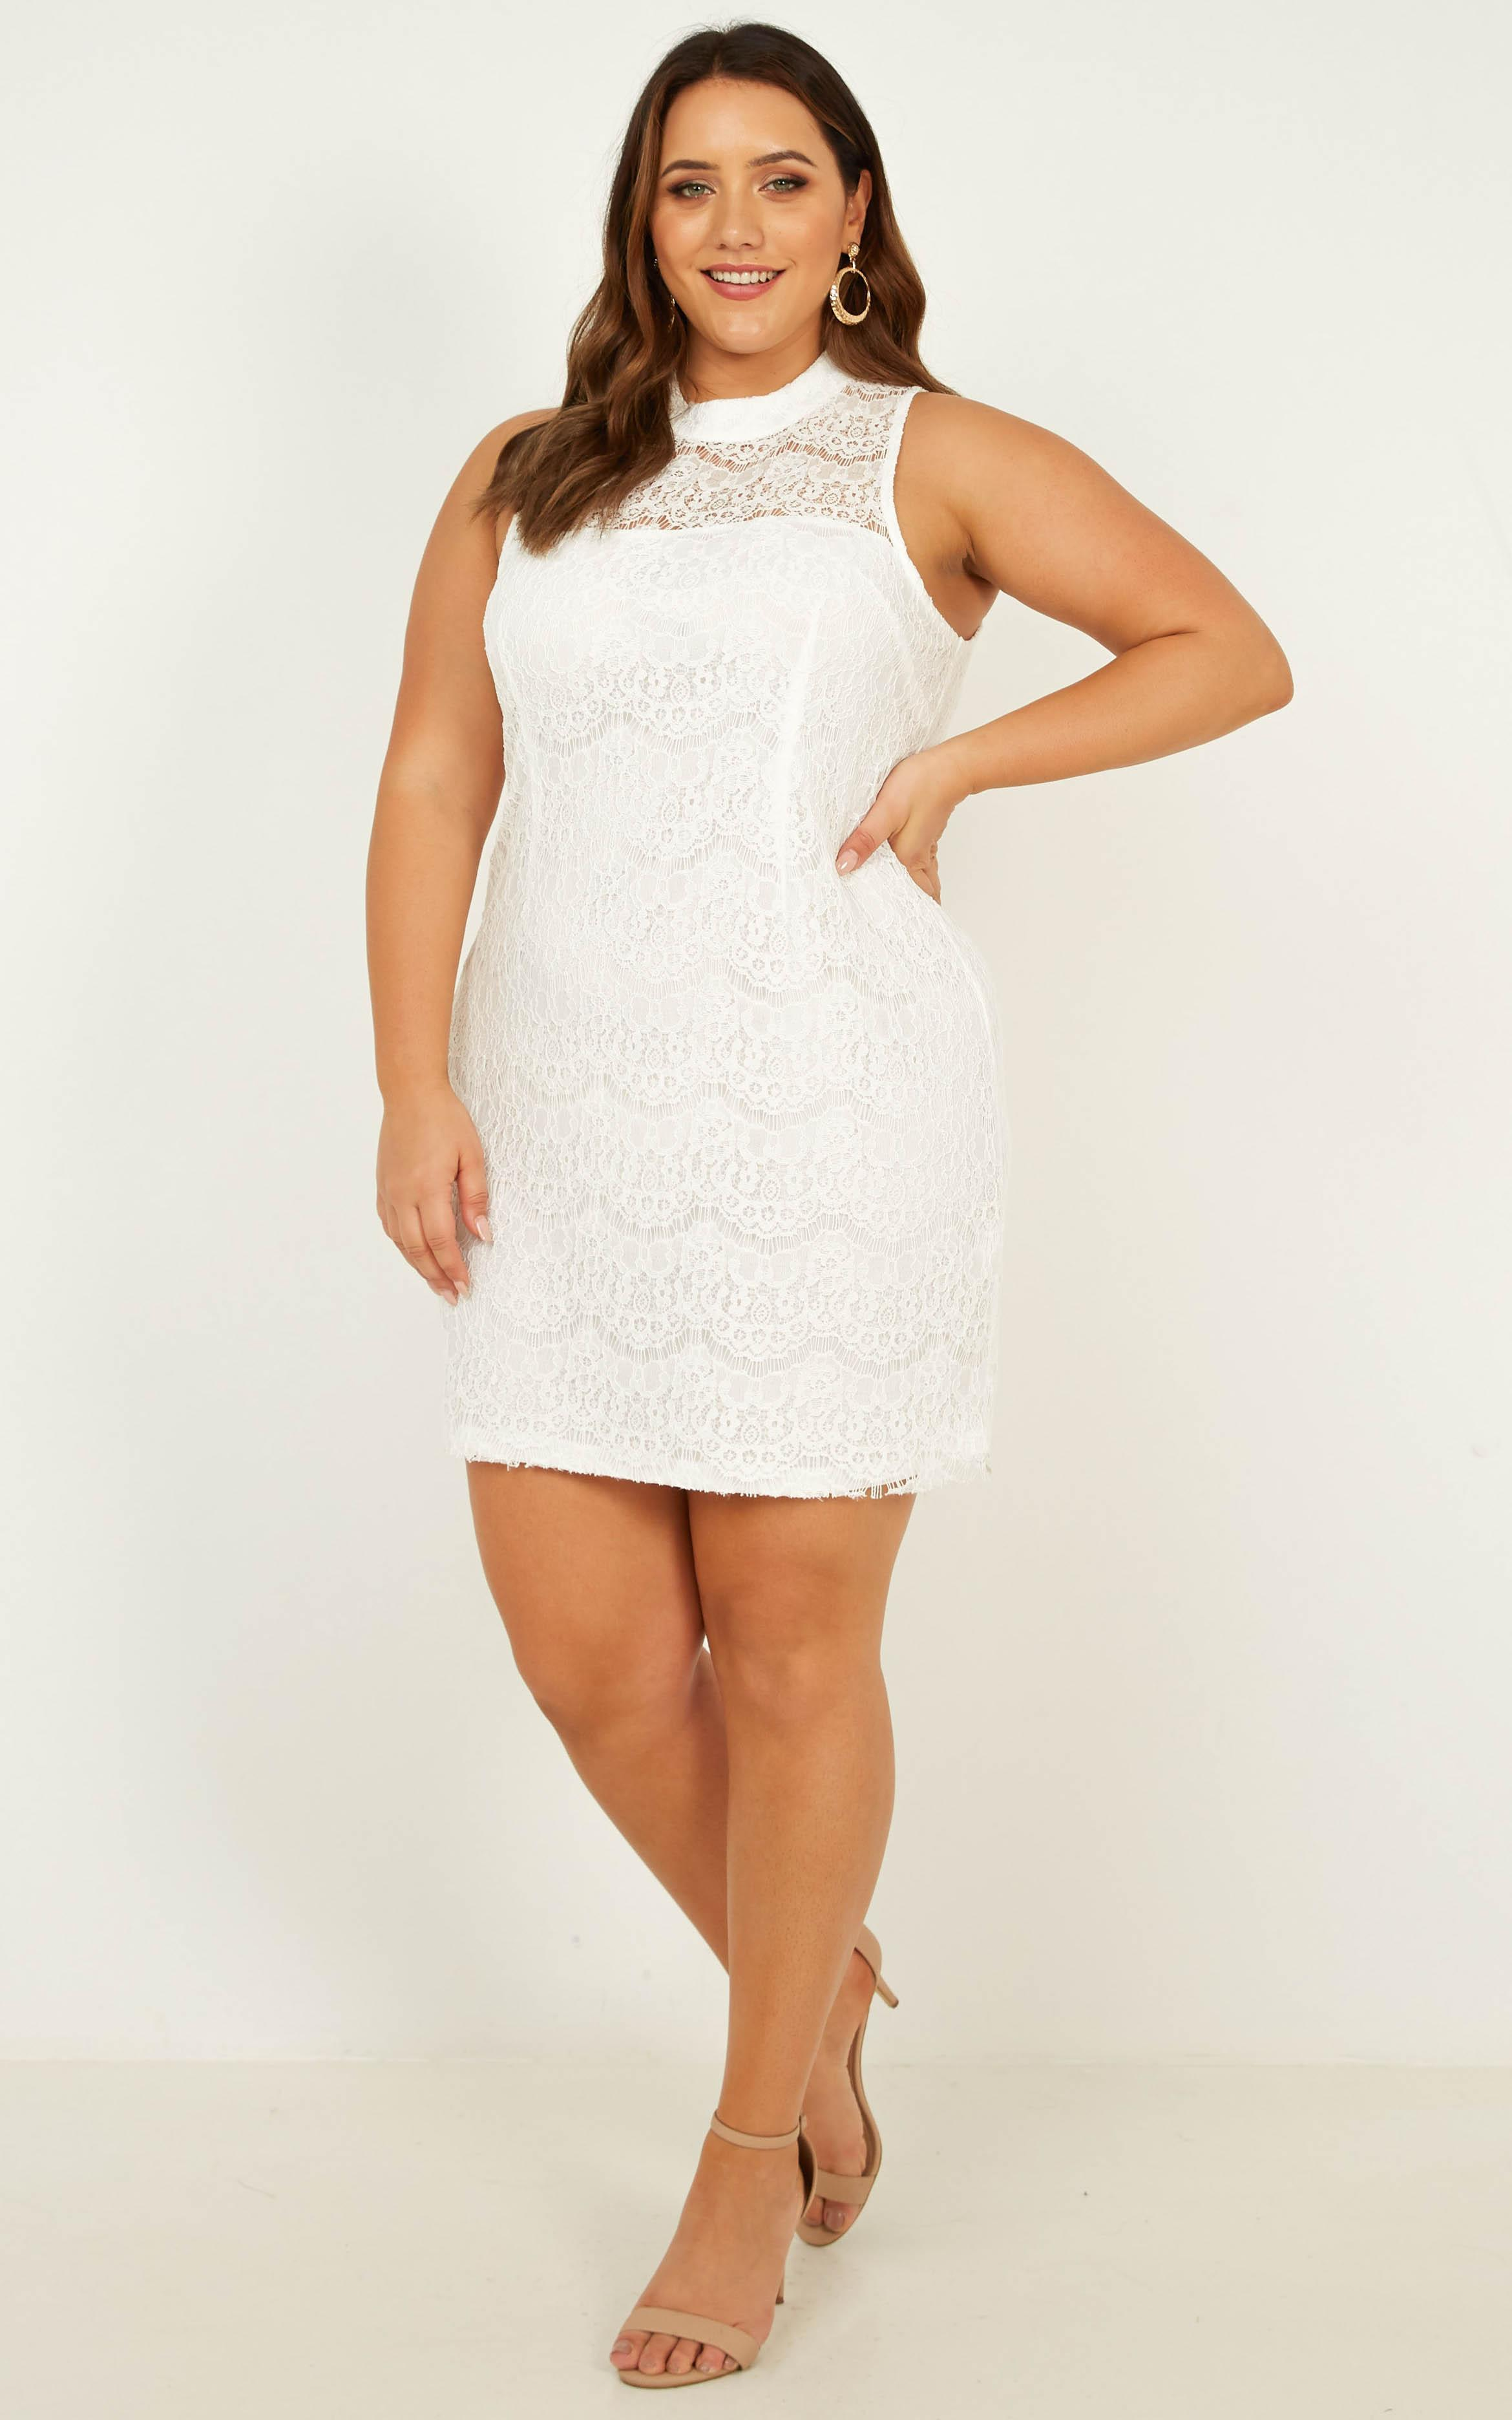 Get The Moves on Dress in white lace - 14 (XL), White, hi-res image number null